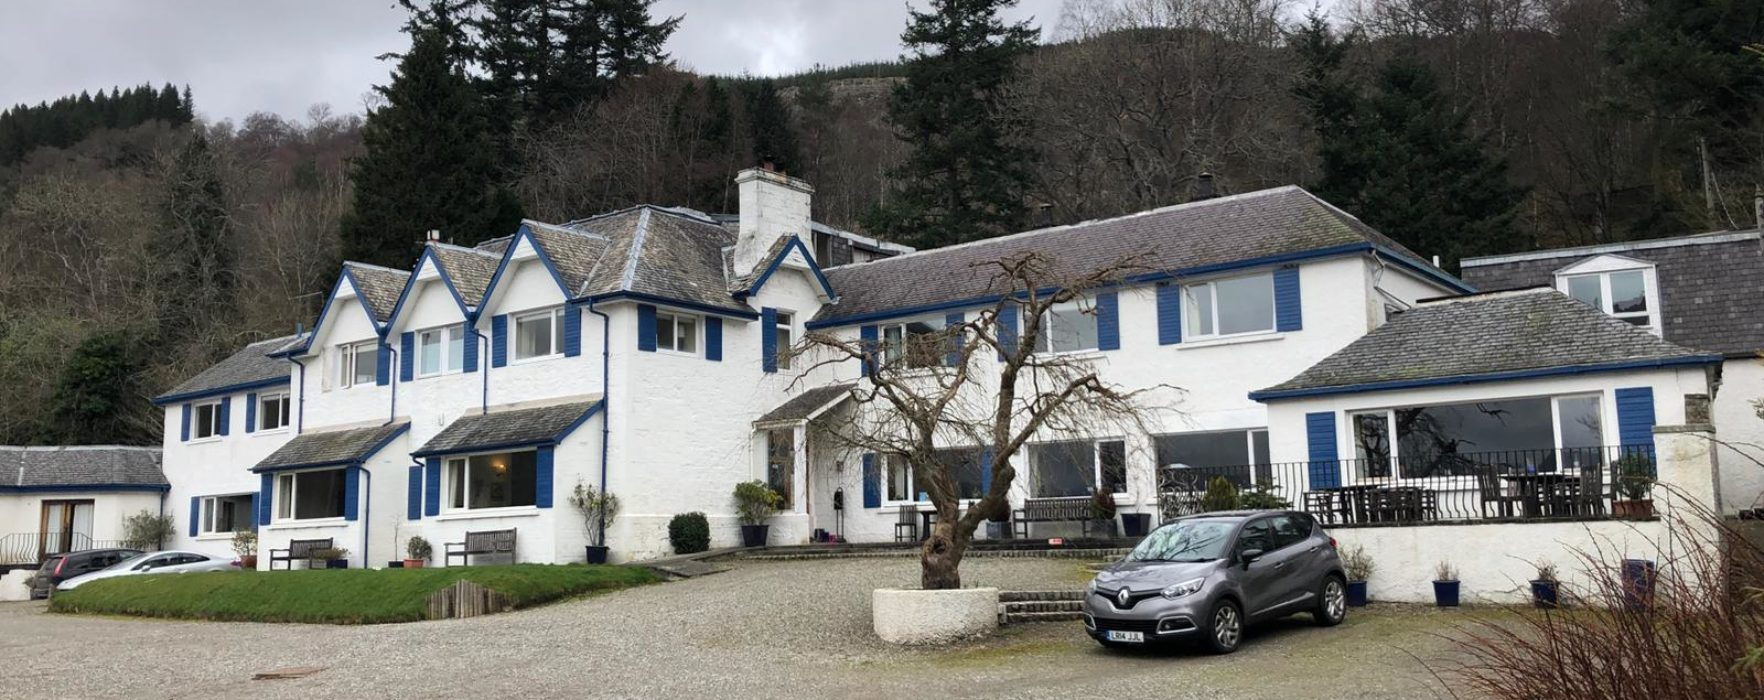 WEEKEND BREAKS: Accommodation for all seasons at The Four Seasons, Loch Earn